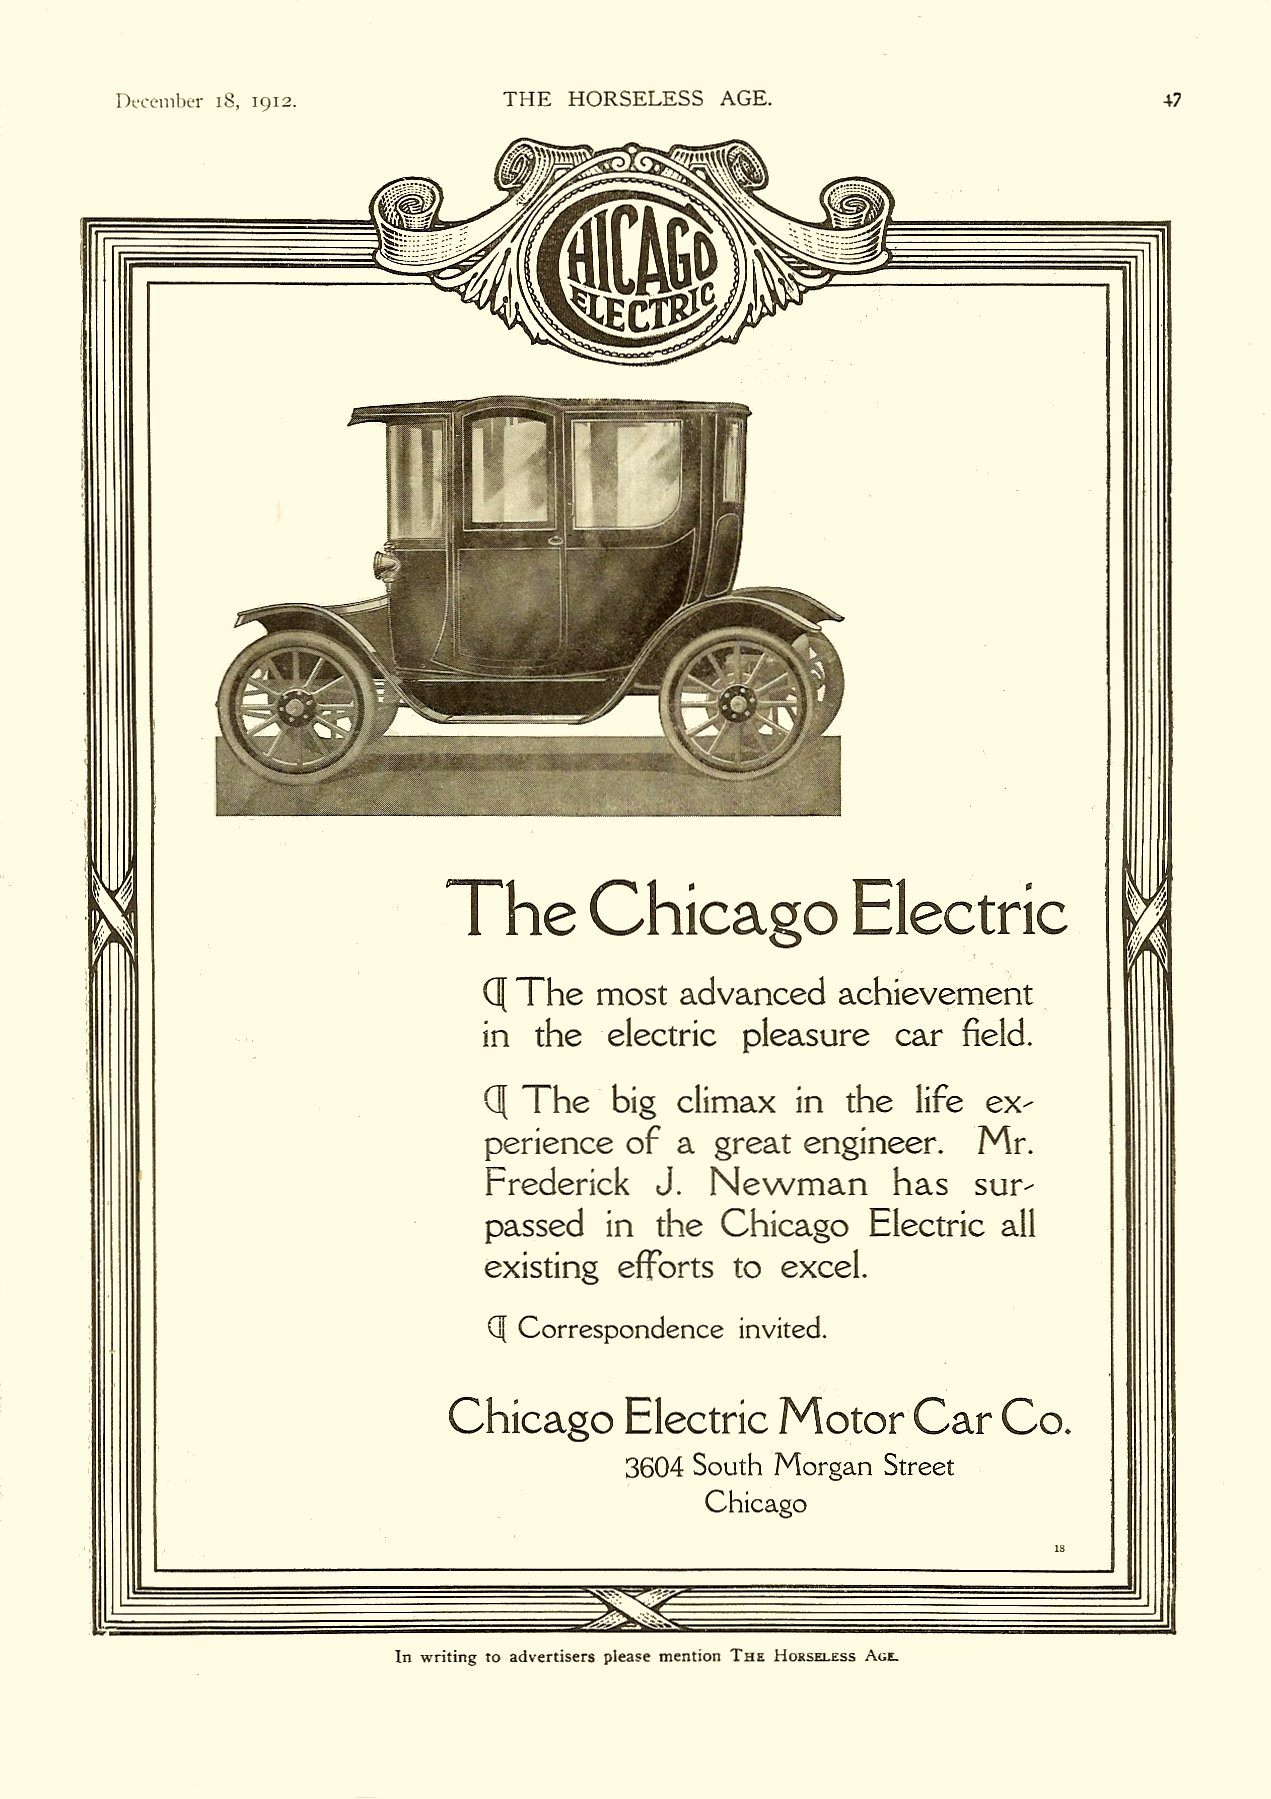 1912 12 18 1913 The Chicago Electric Chicago Electric Motor Car Co. Chicago, Illinois THE HORSELESS AGE Vol. 30, No. 25 December 18, 1912 9″x12″ page 47